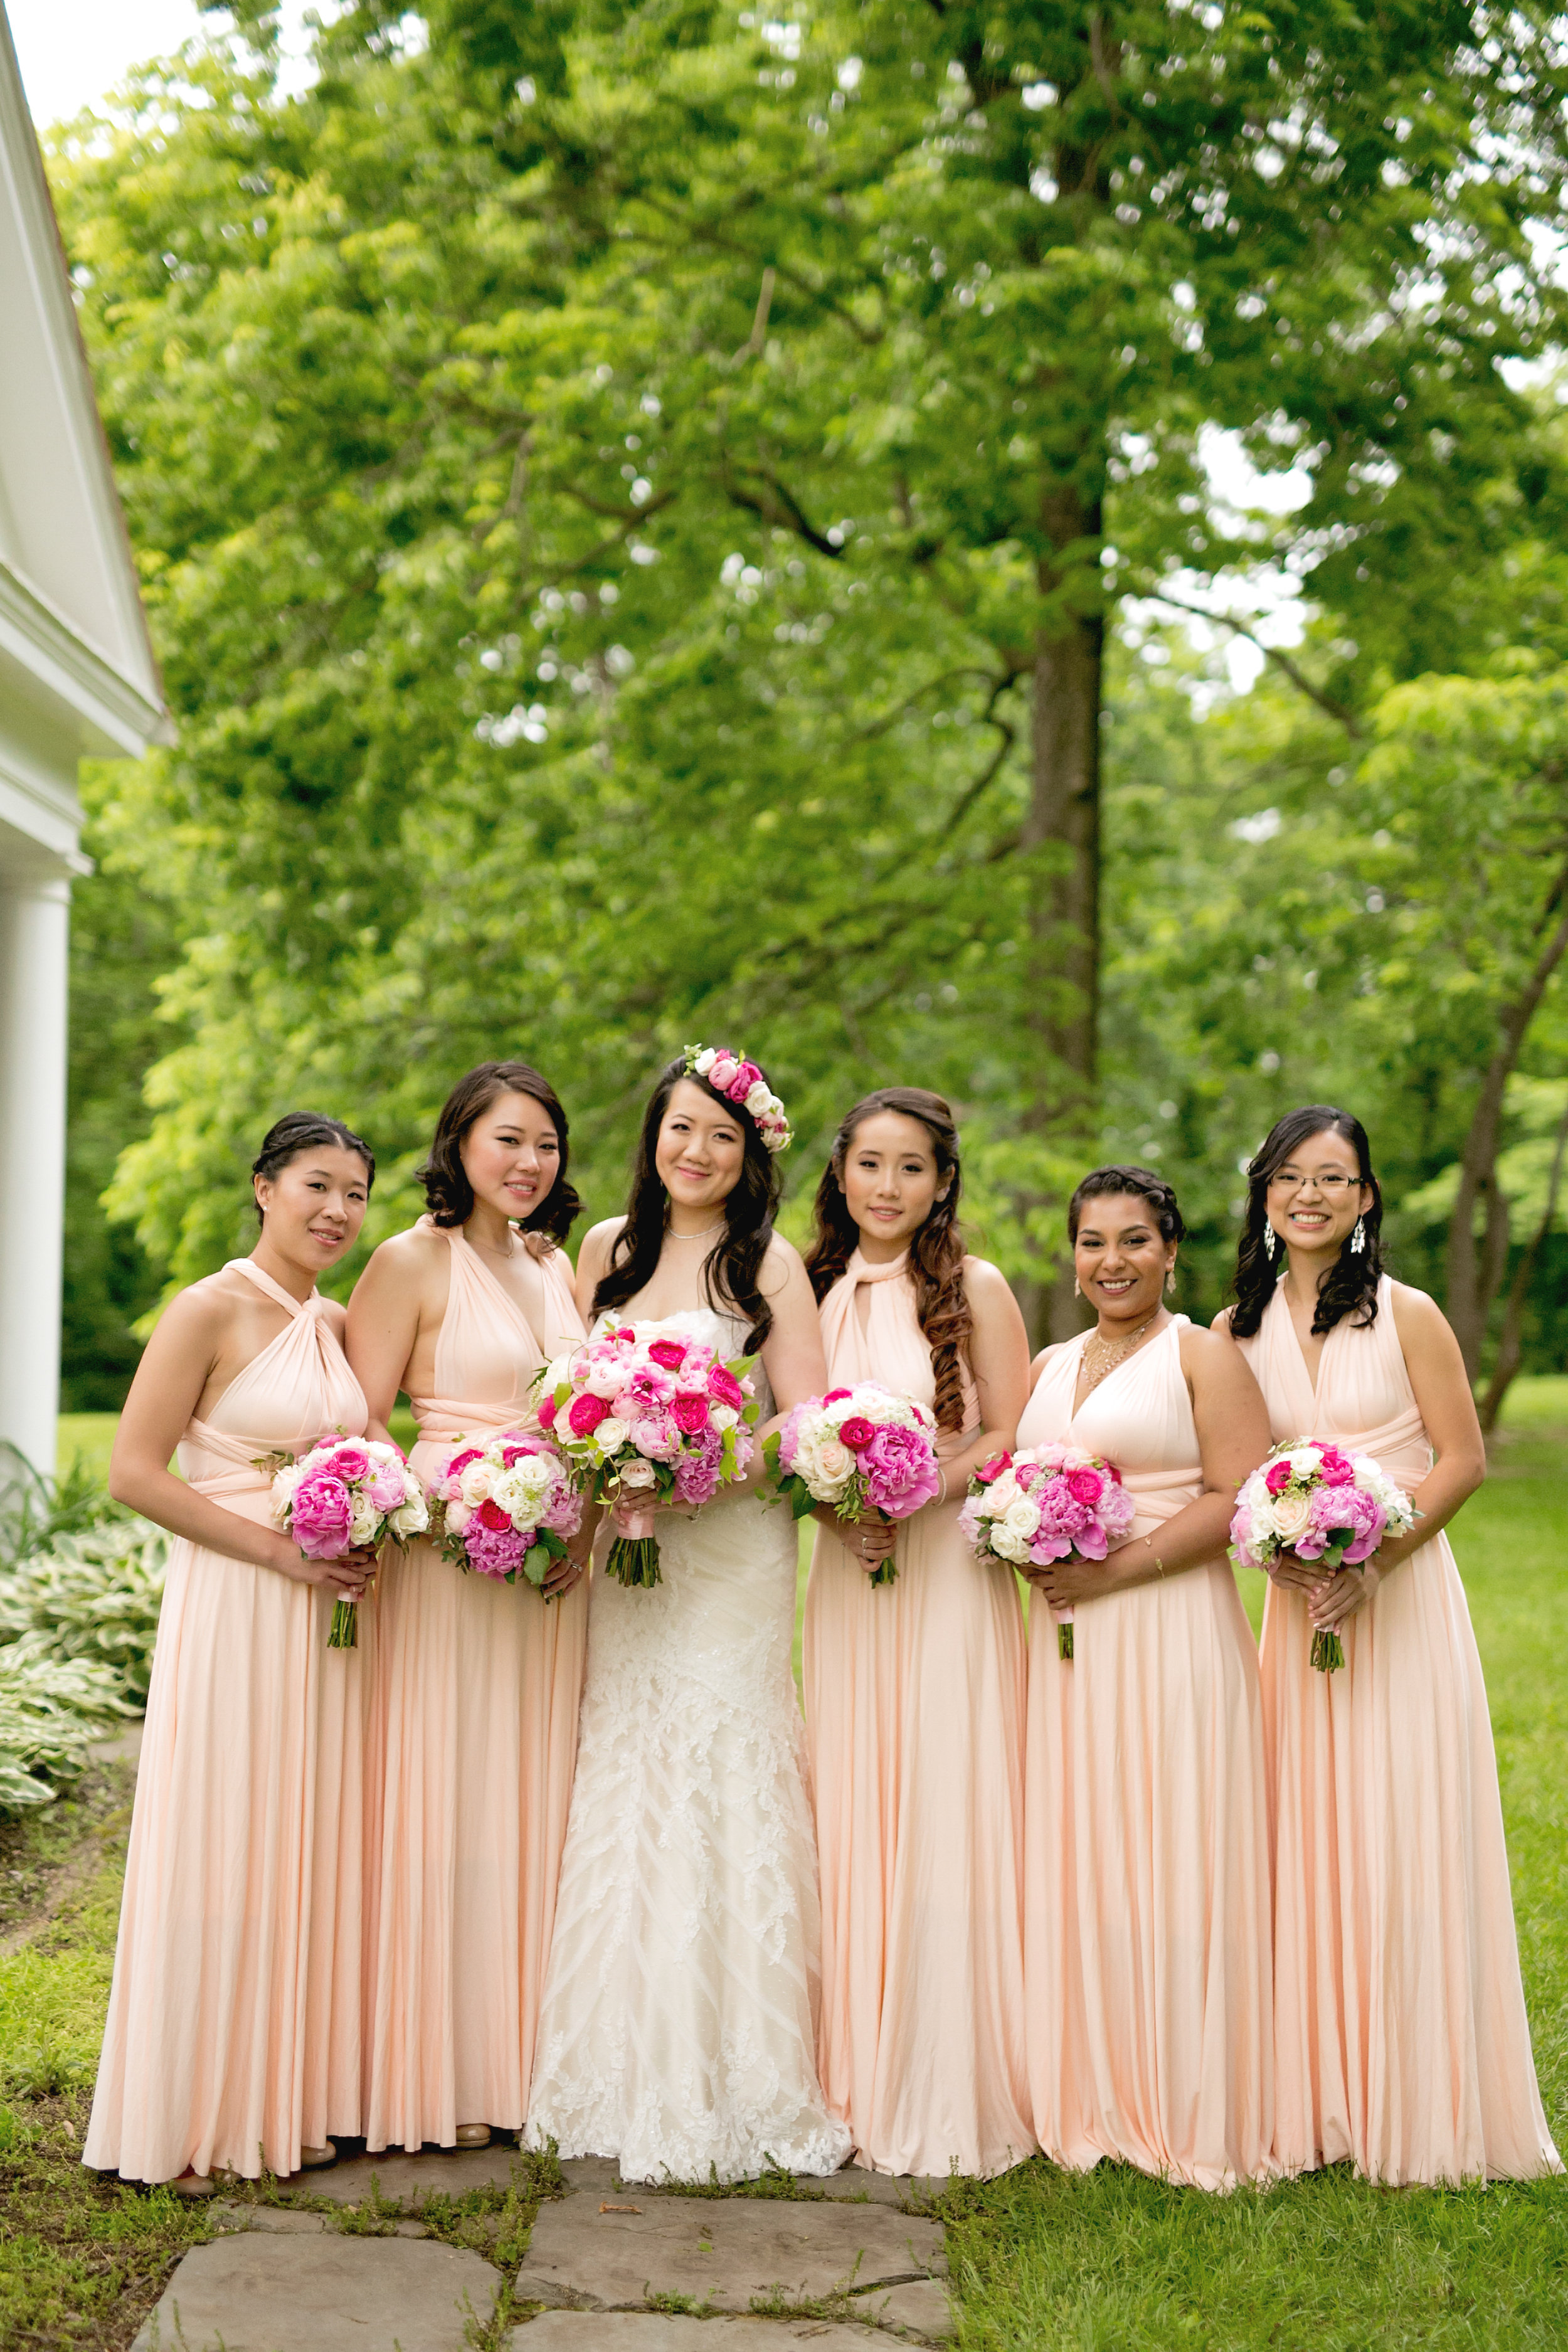 Bridesmaids with blush dresses and pink bouquets